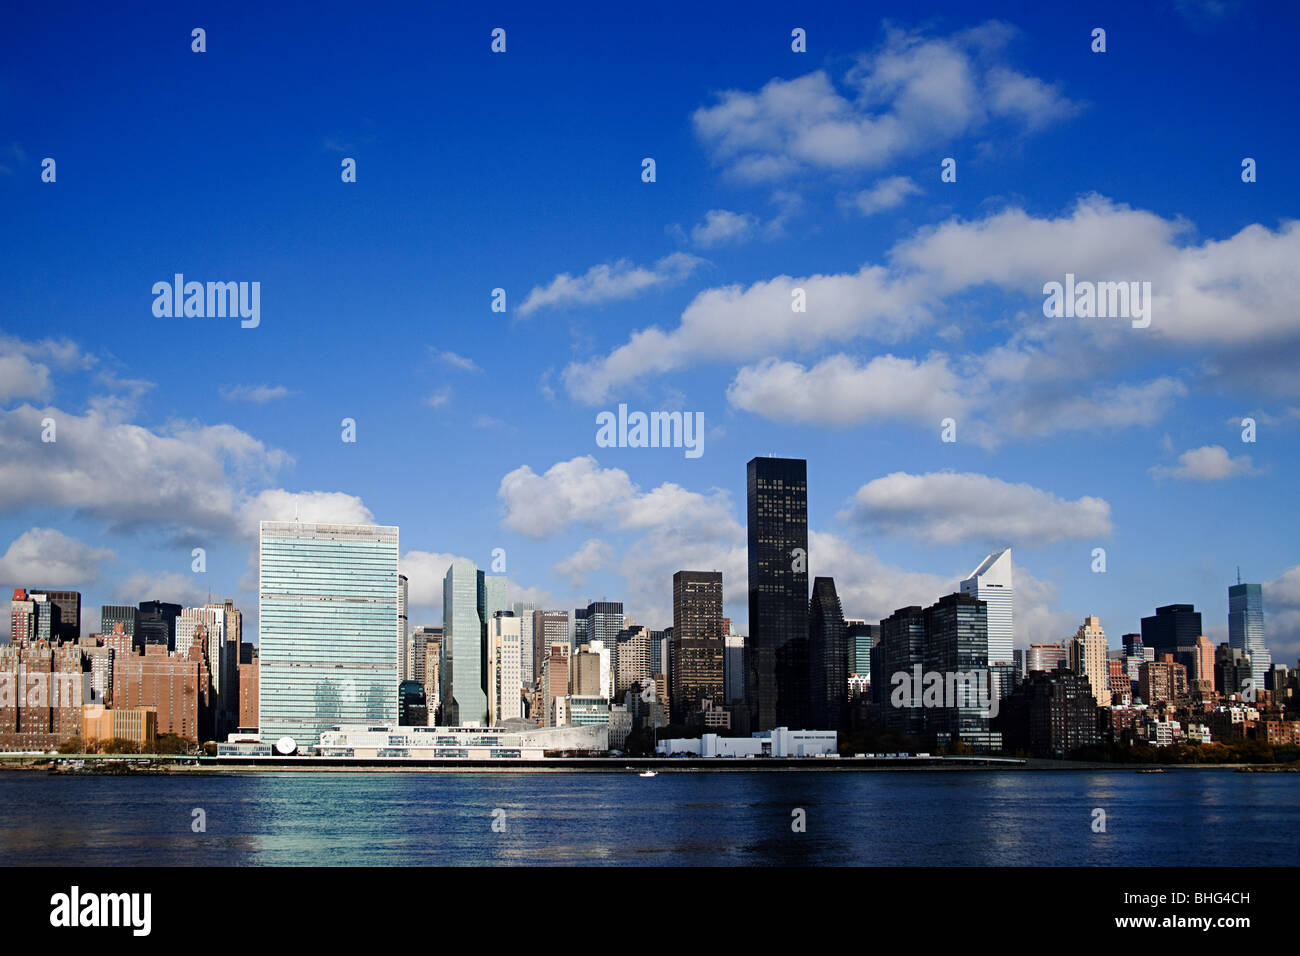 East river and manhattan skyscrapers - Stock Image